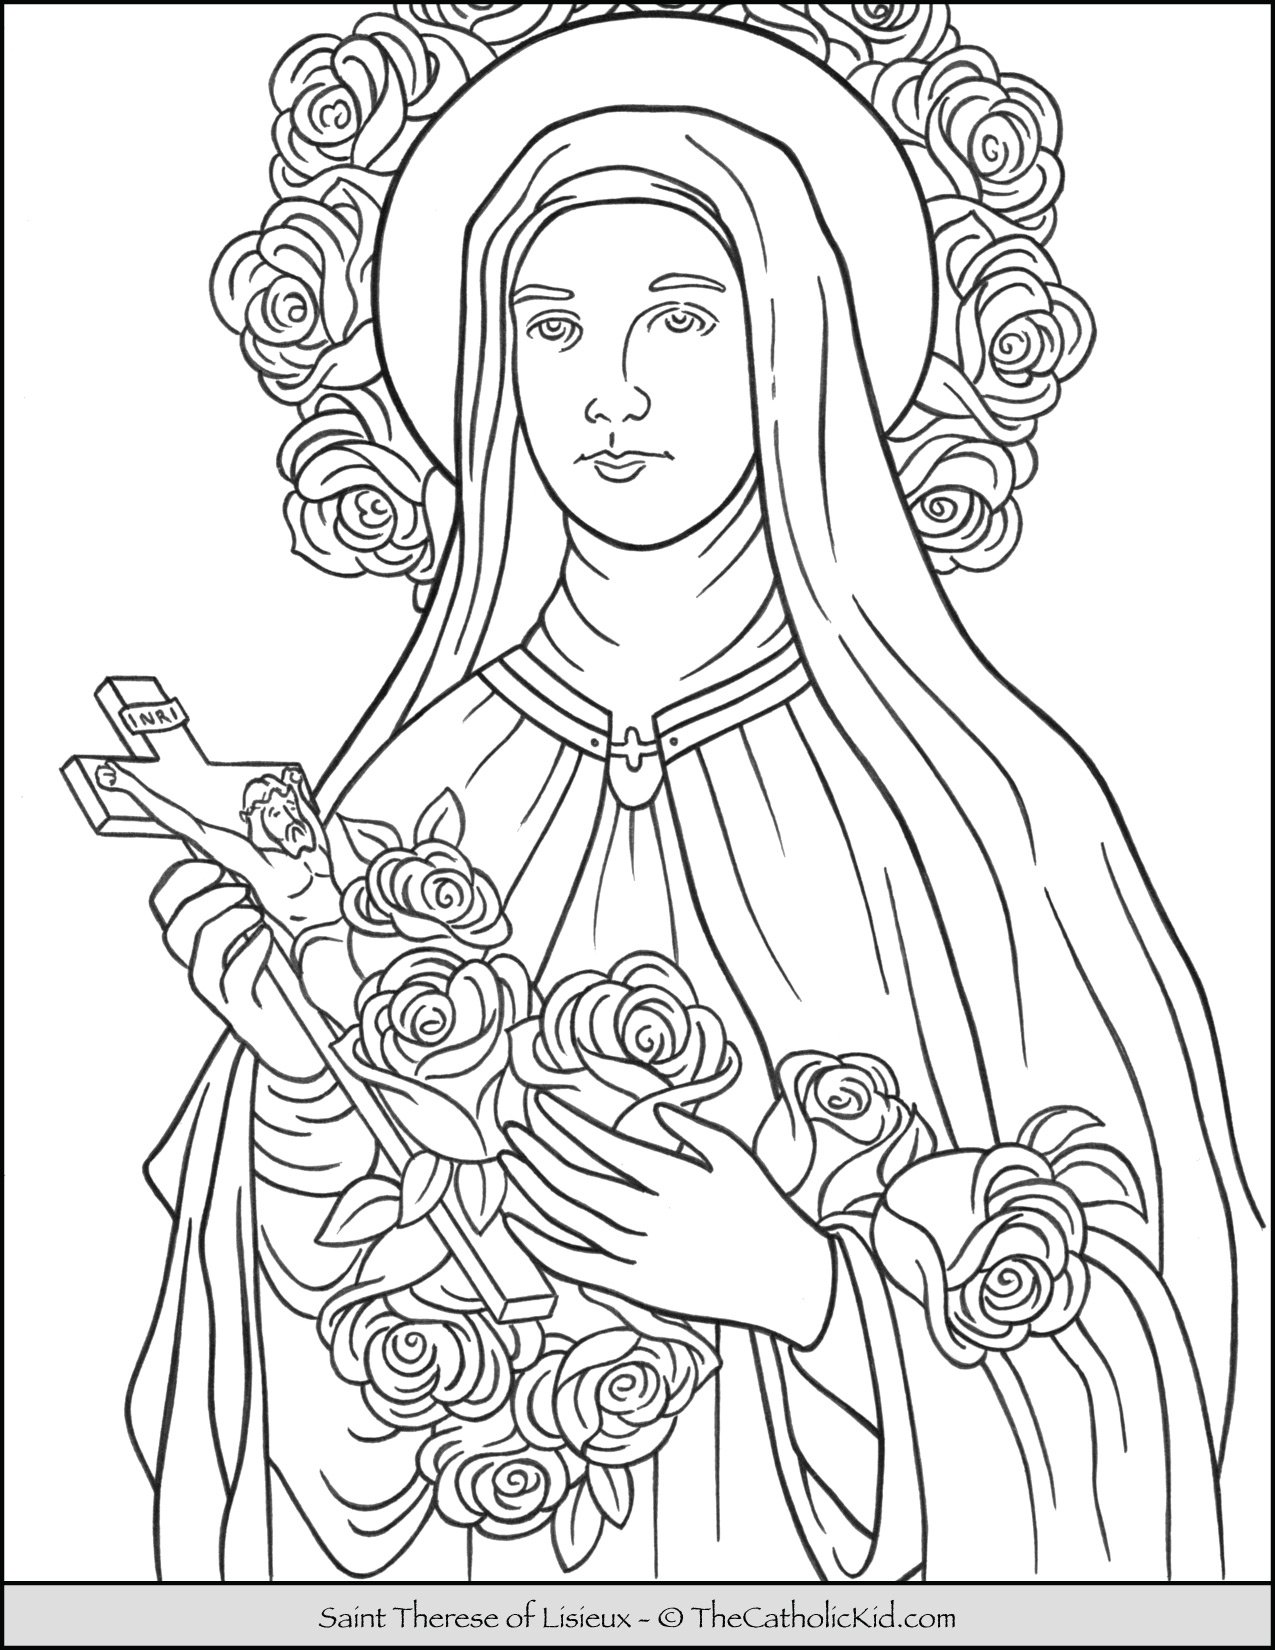 Saint Therese of Lisieux Coloring Page